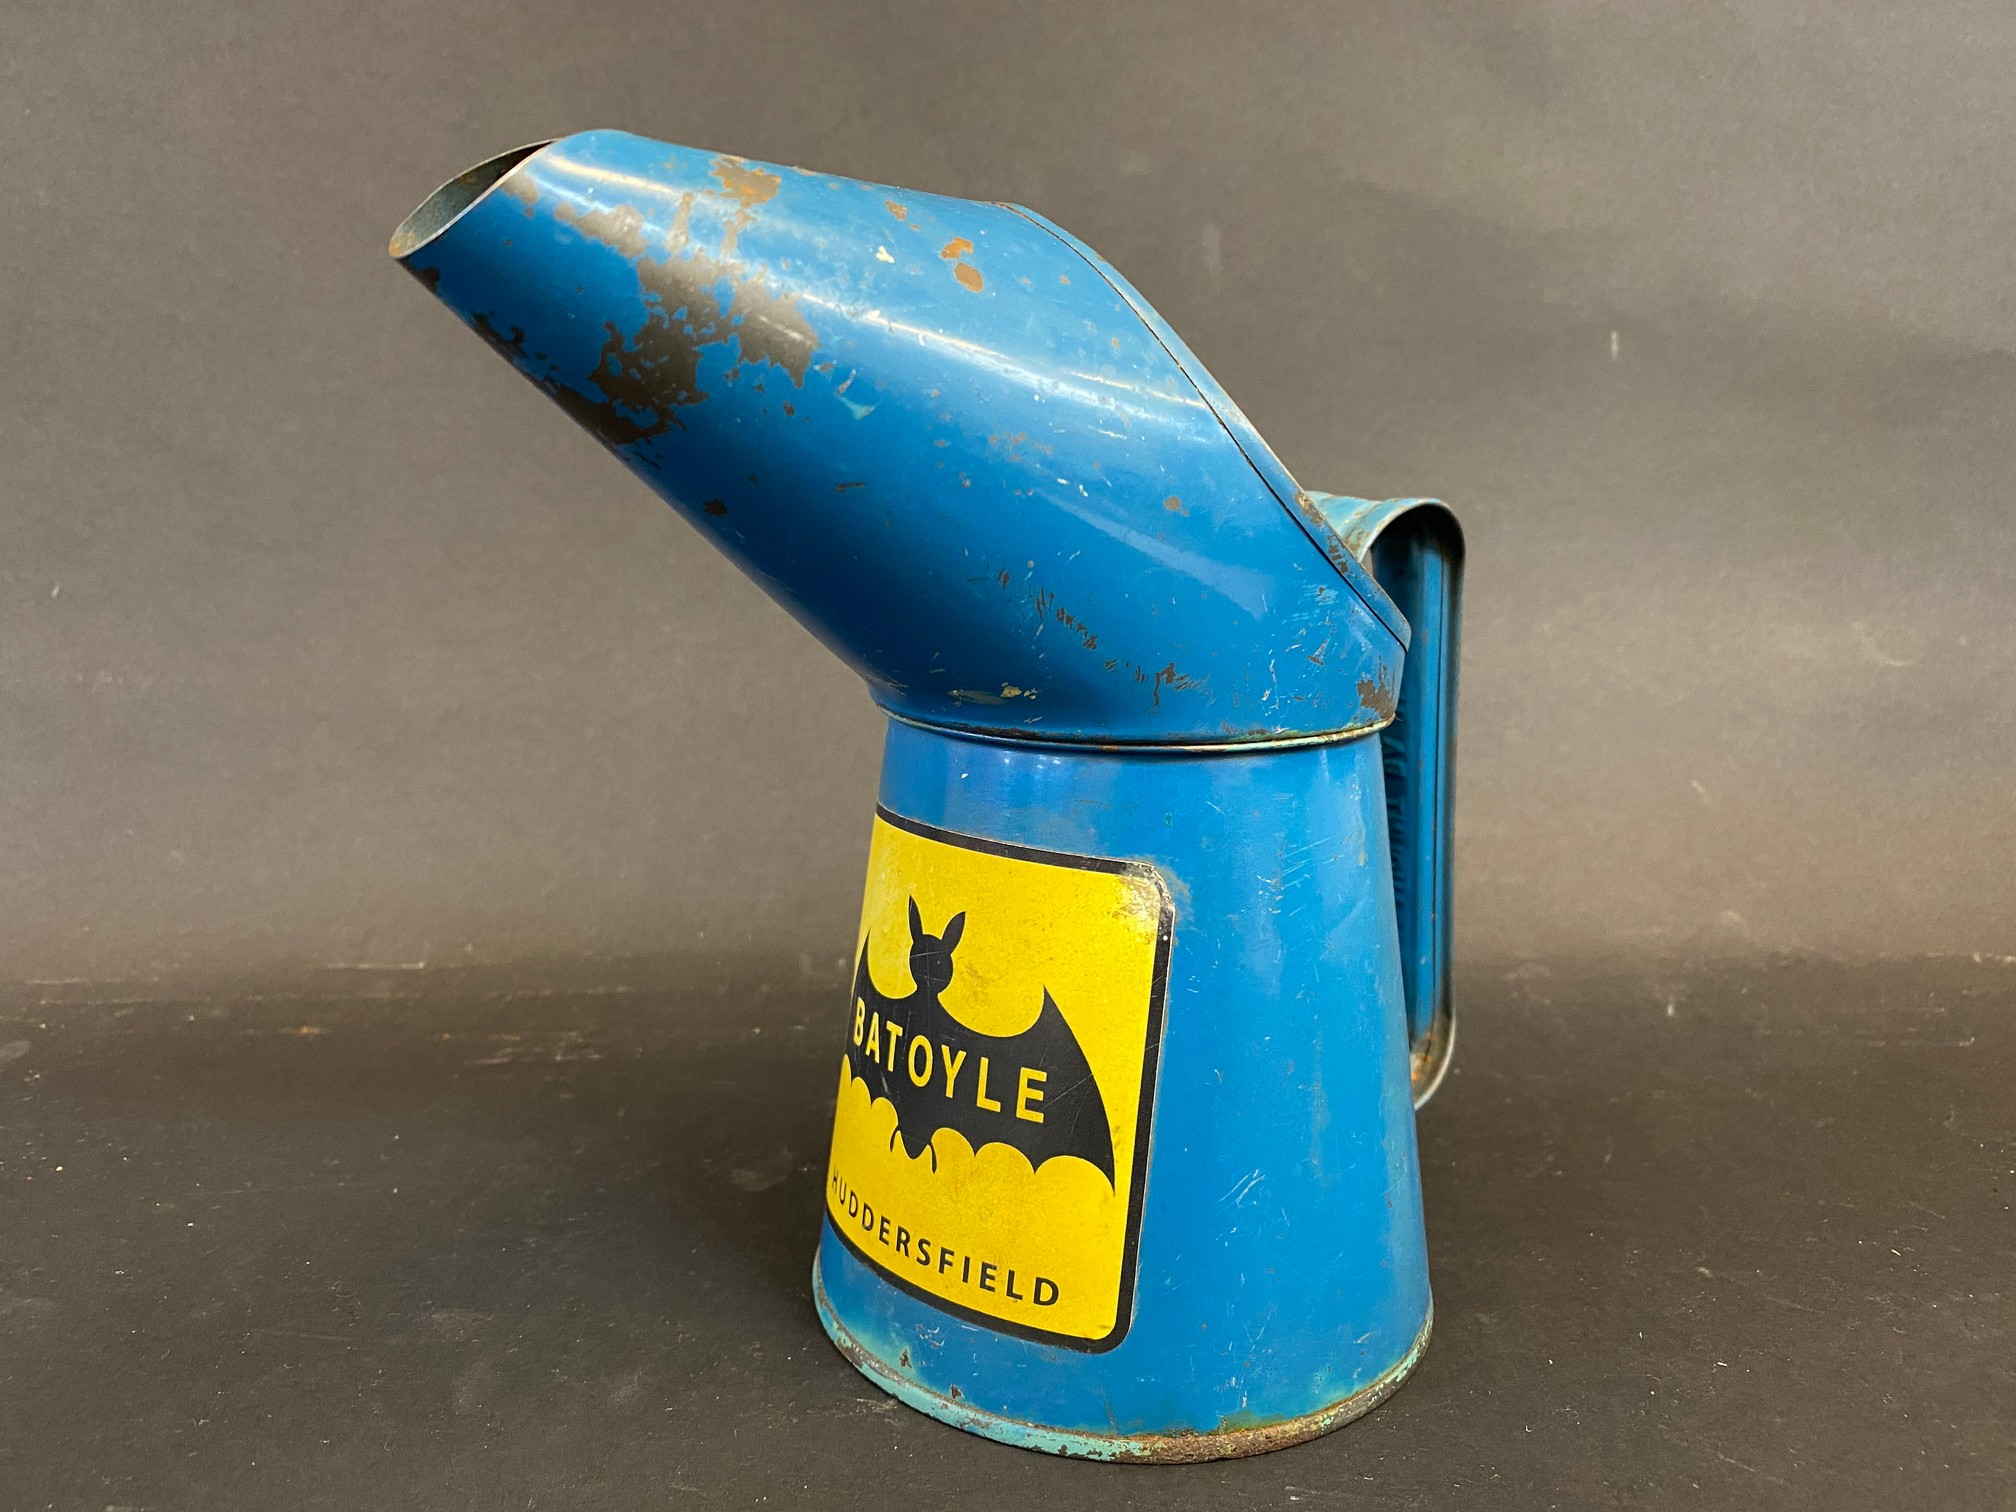 A Batoyle of Huddesfield pint measure dated 1977, in good condition.